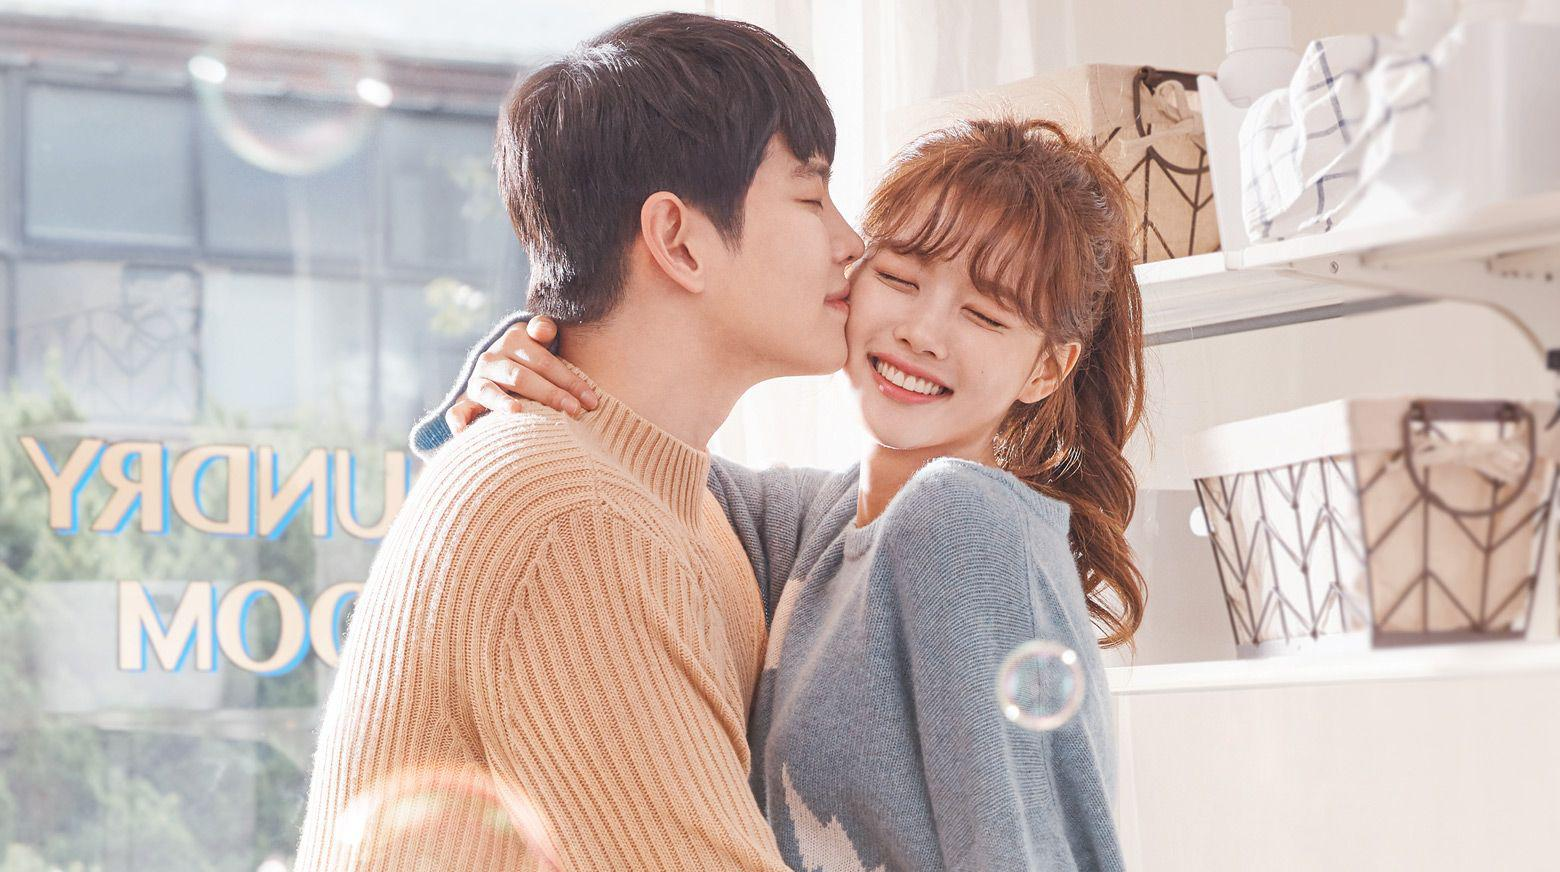 Clean with Passion for Now Episode 1 - 일단 뜨겁게 청소하라 - Watch